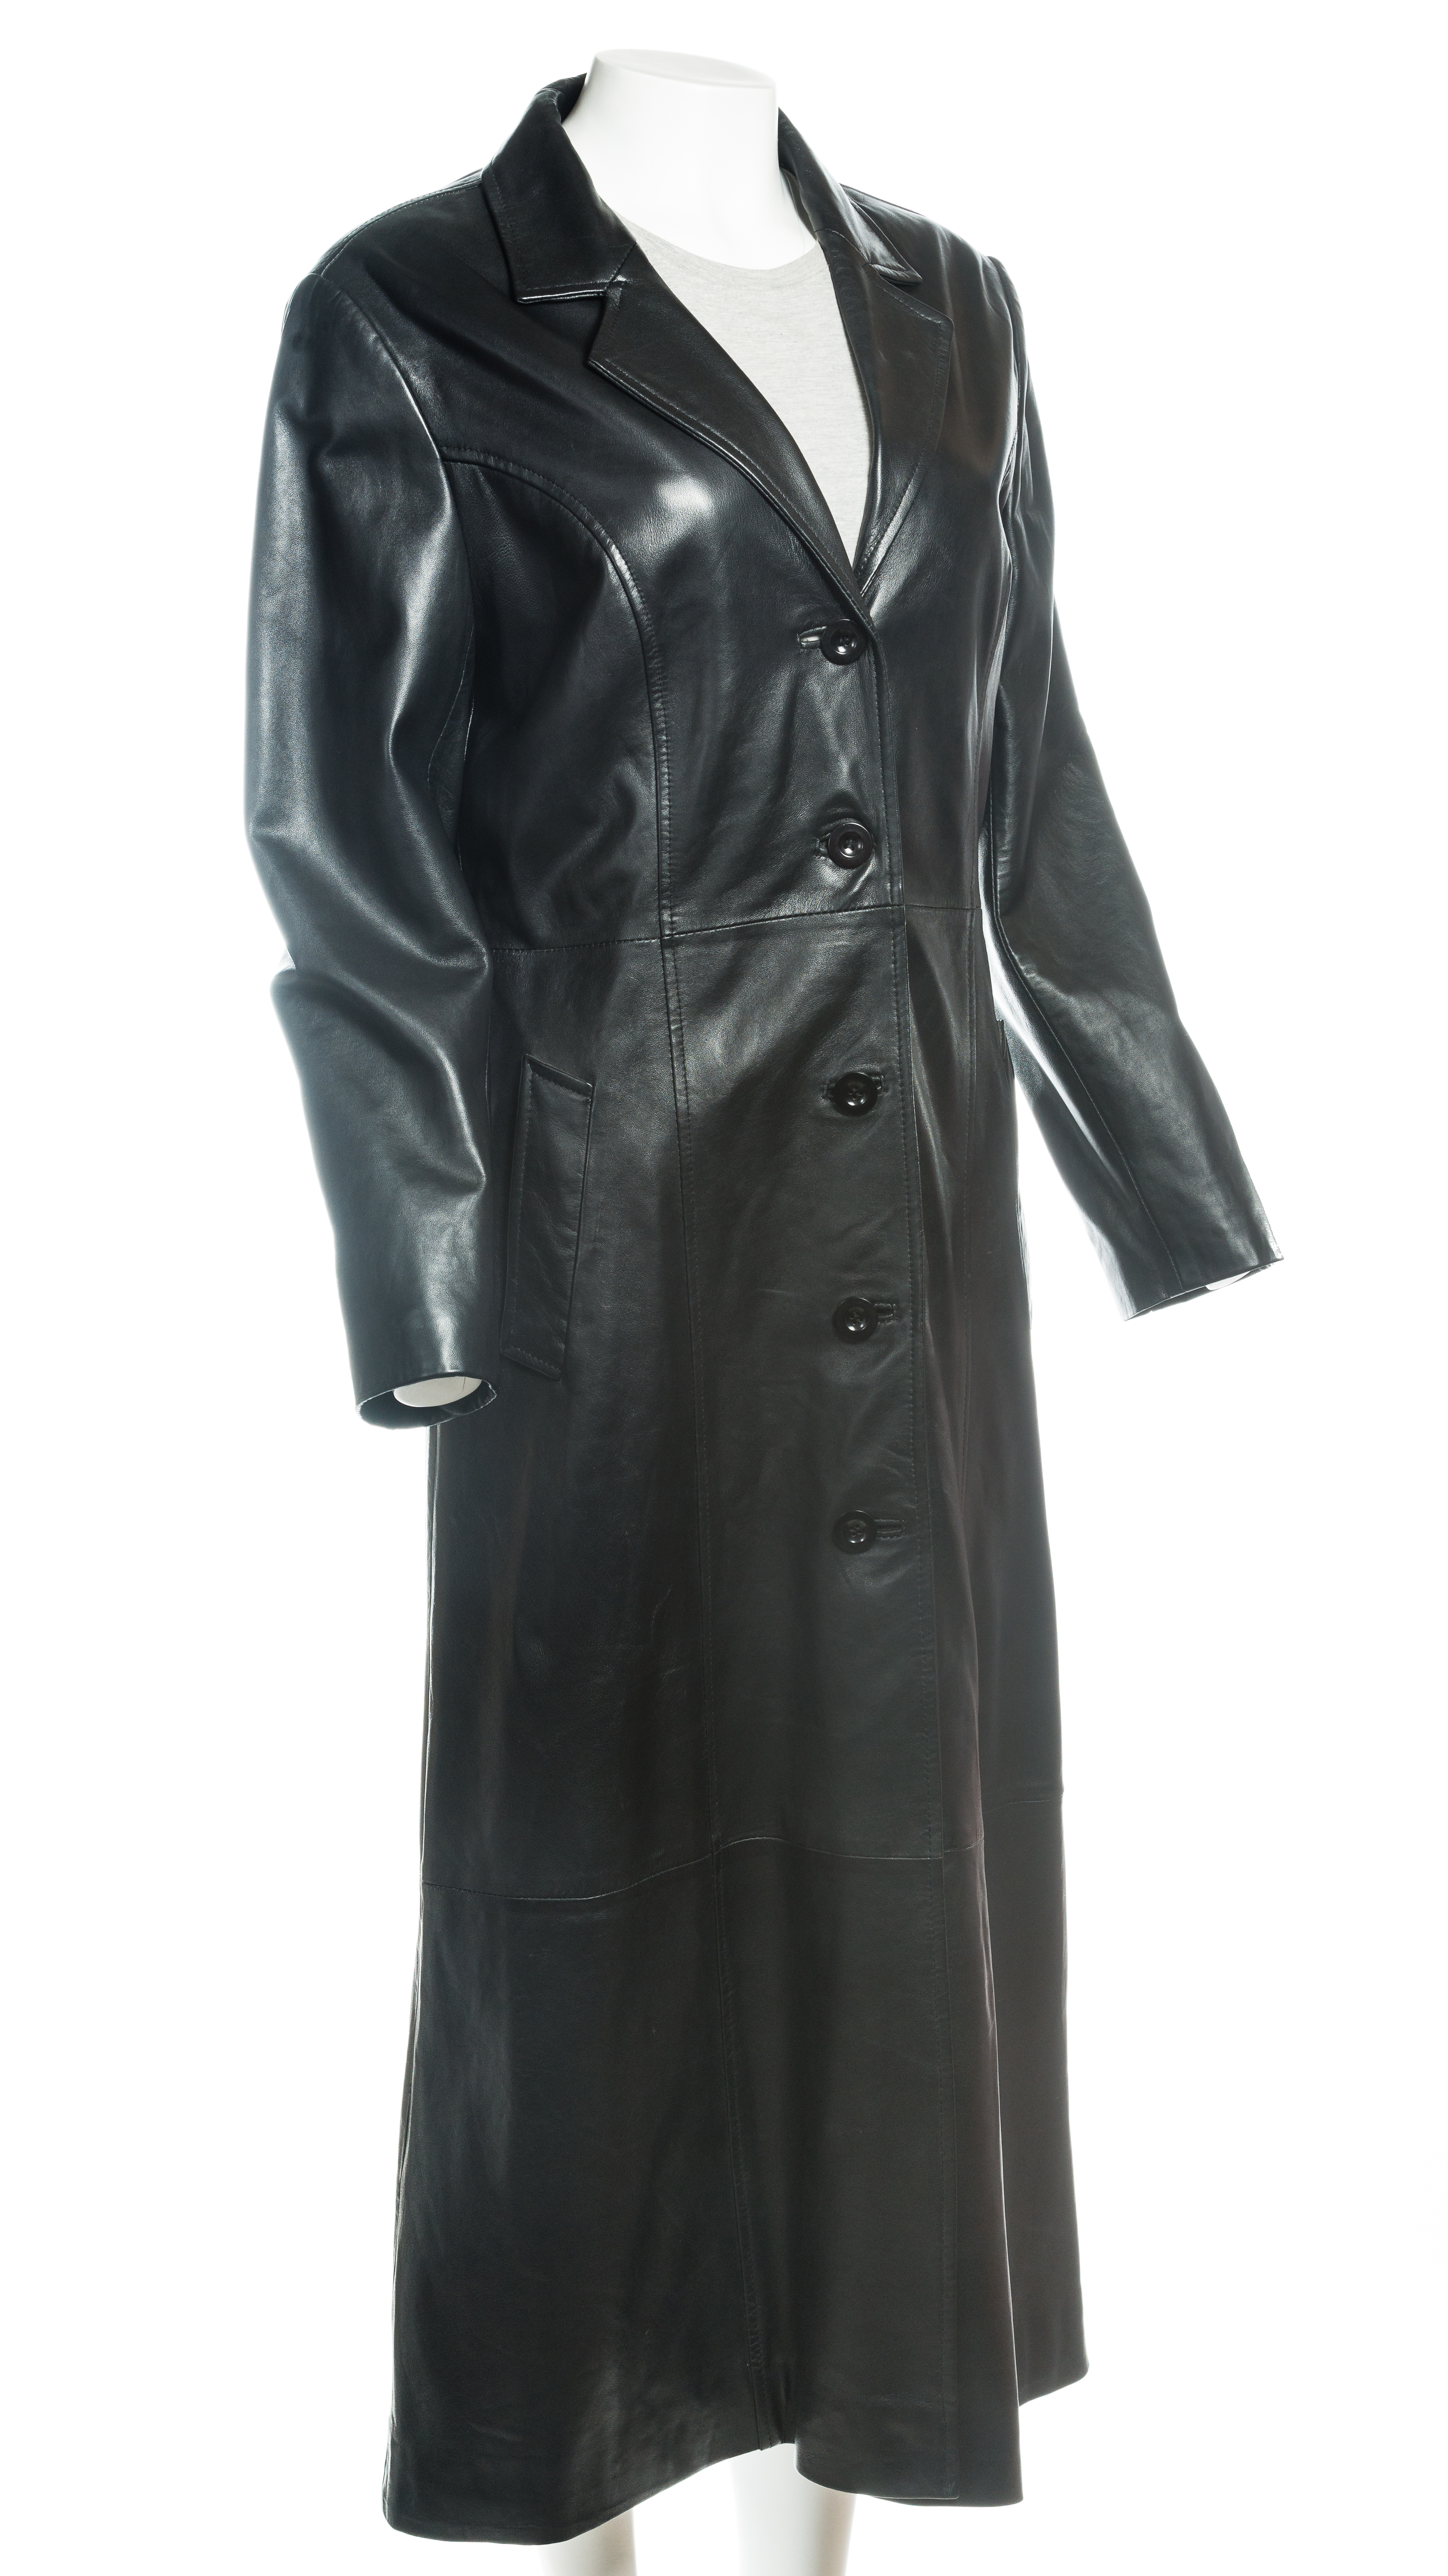 great look luxuriant in design great discount for Ladies Black Full Length Buttoned Leather Coat | Leather Shop